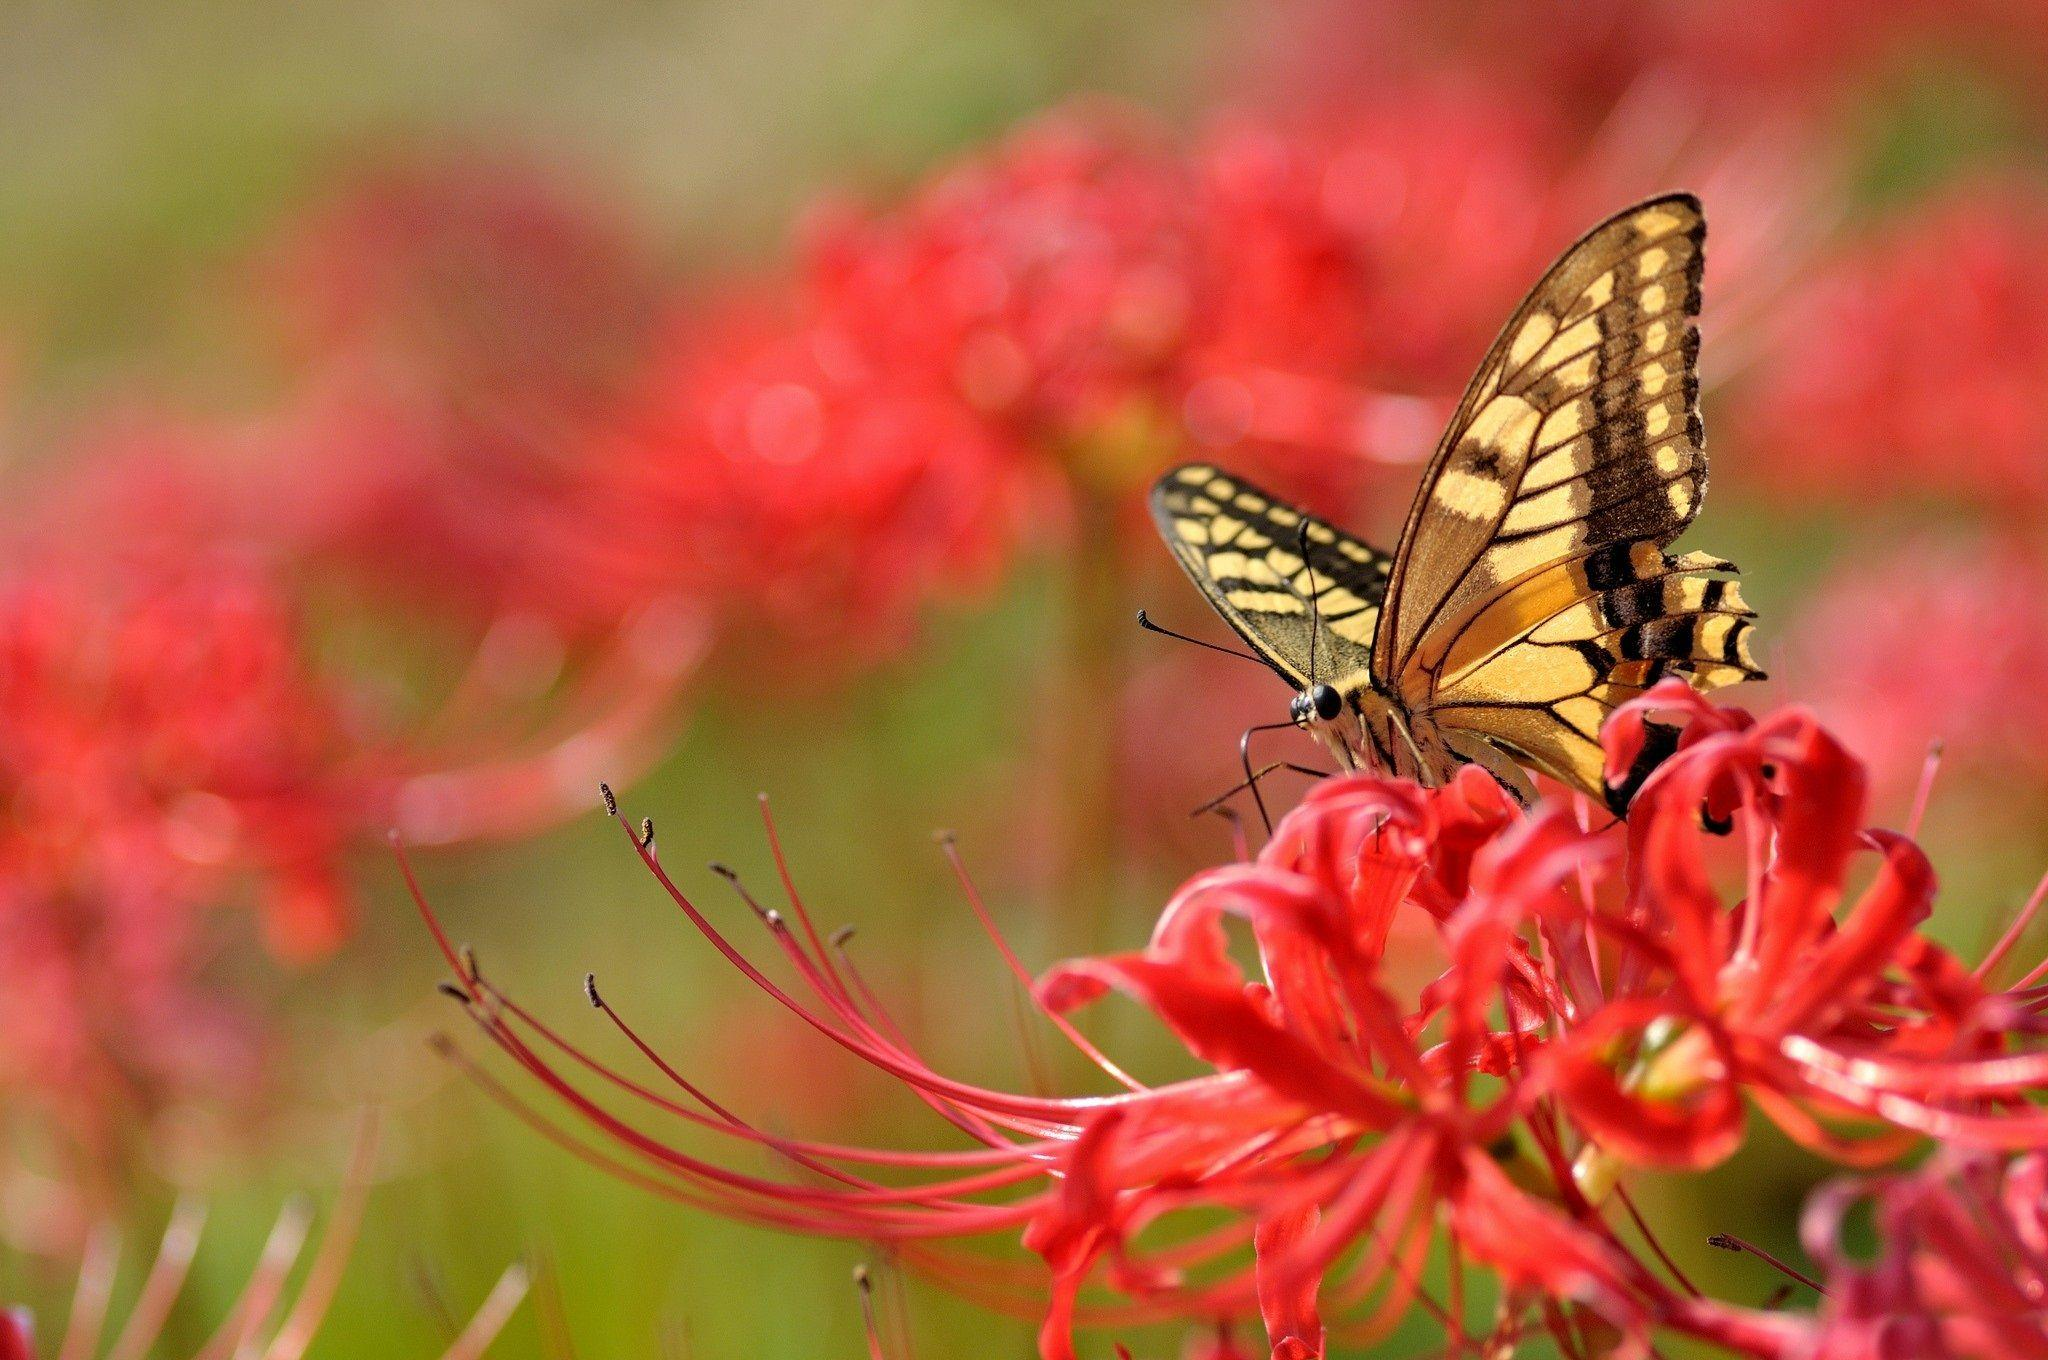 Flowers With Butterfly Wallpapers HD - Wallpaper Cave